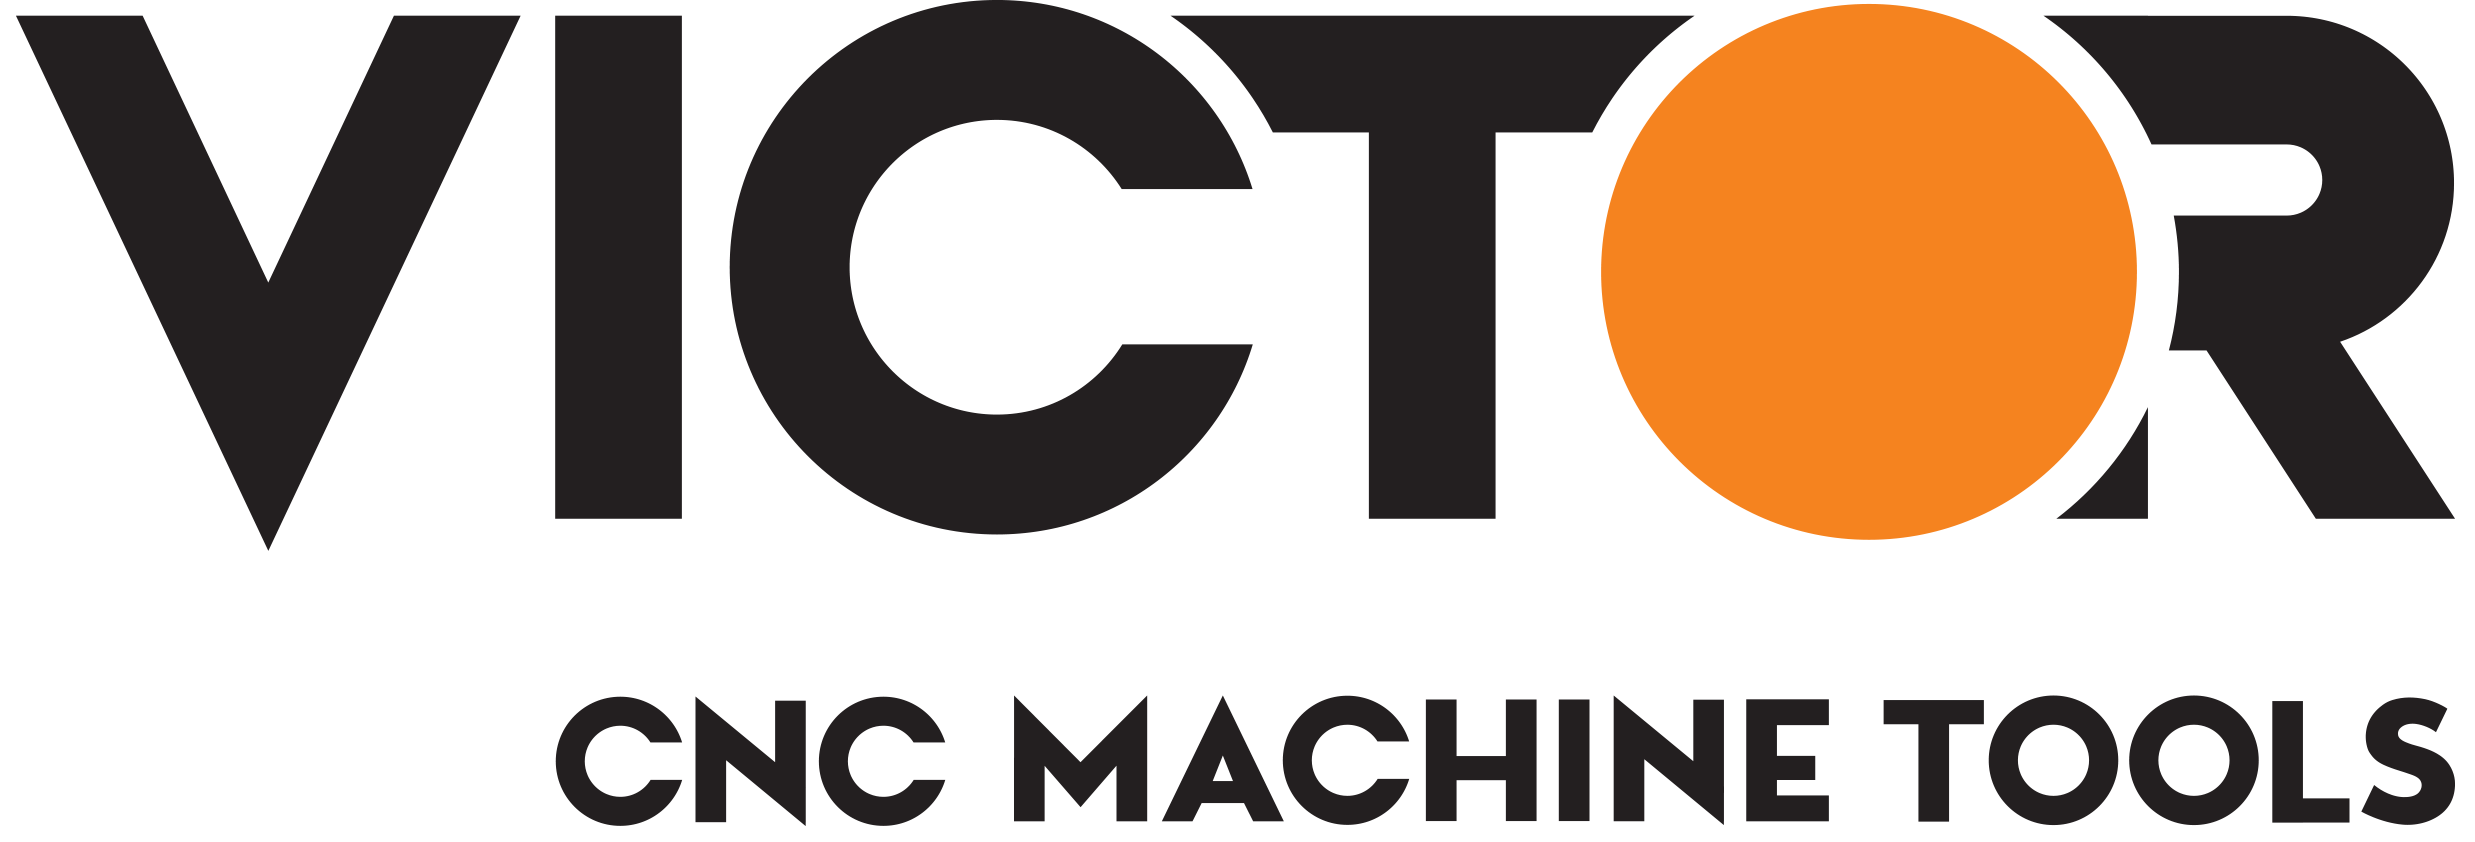 Victor CNC Machine Tools